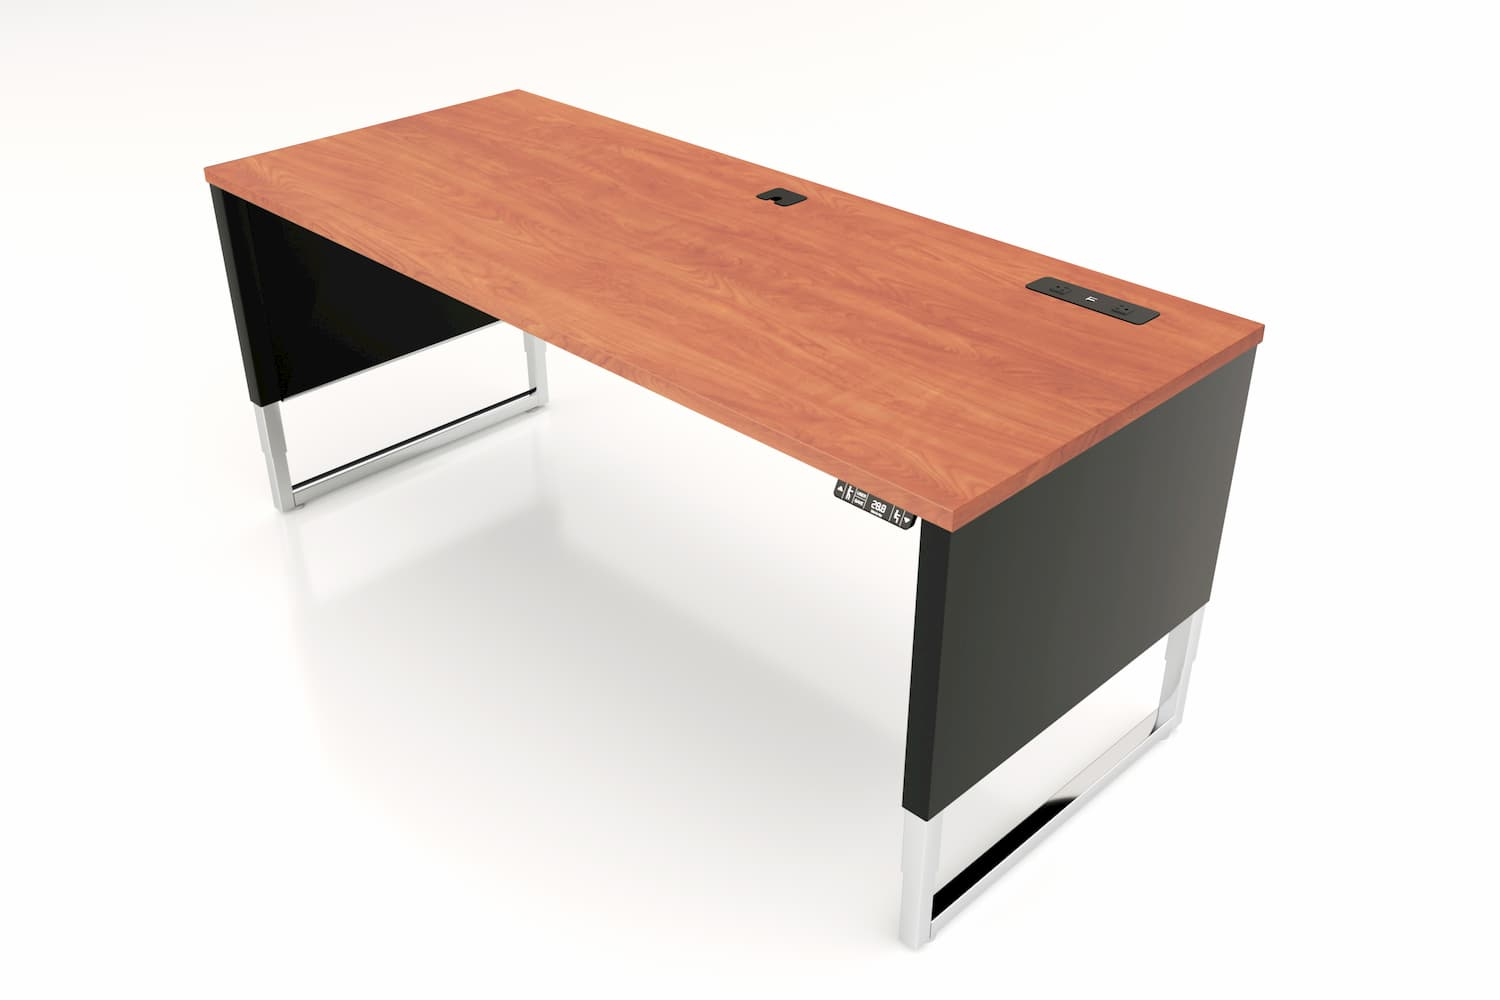 Advent-Desk-ADV-7230-BK-Custom-Top-4